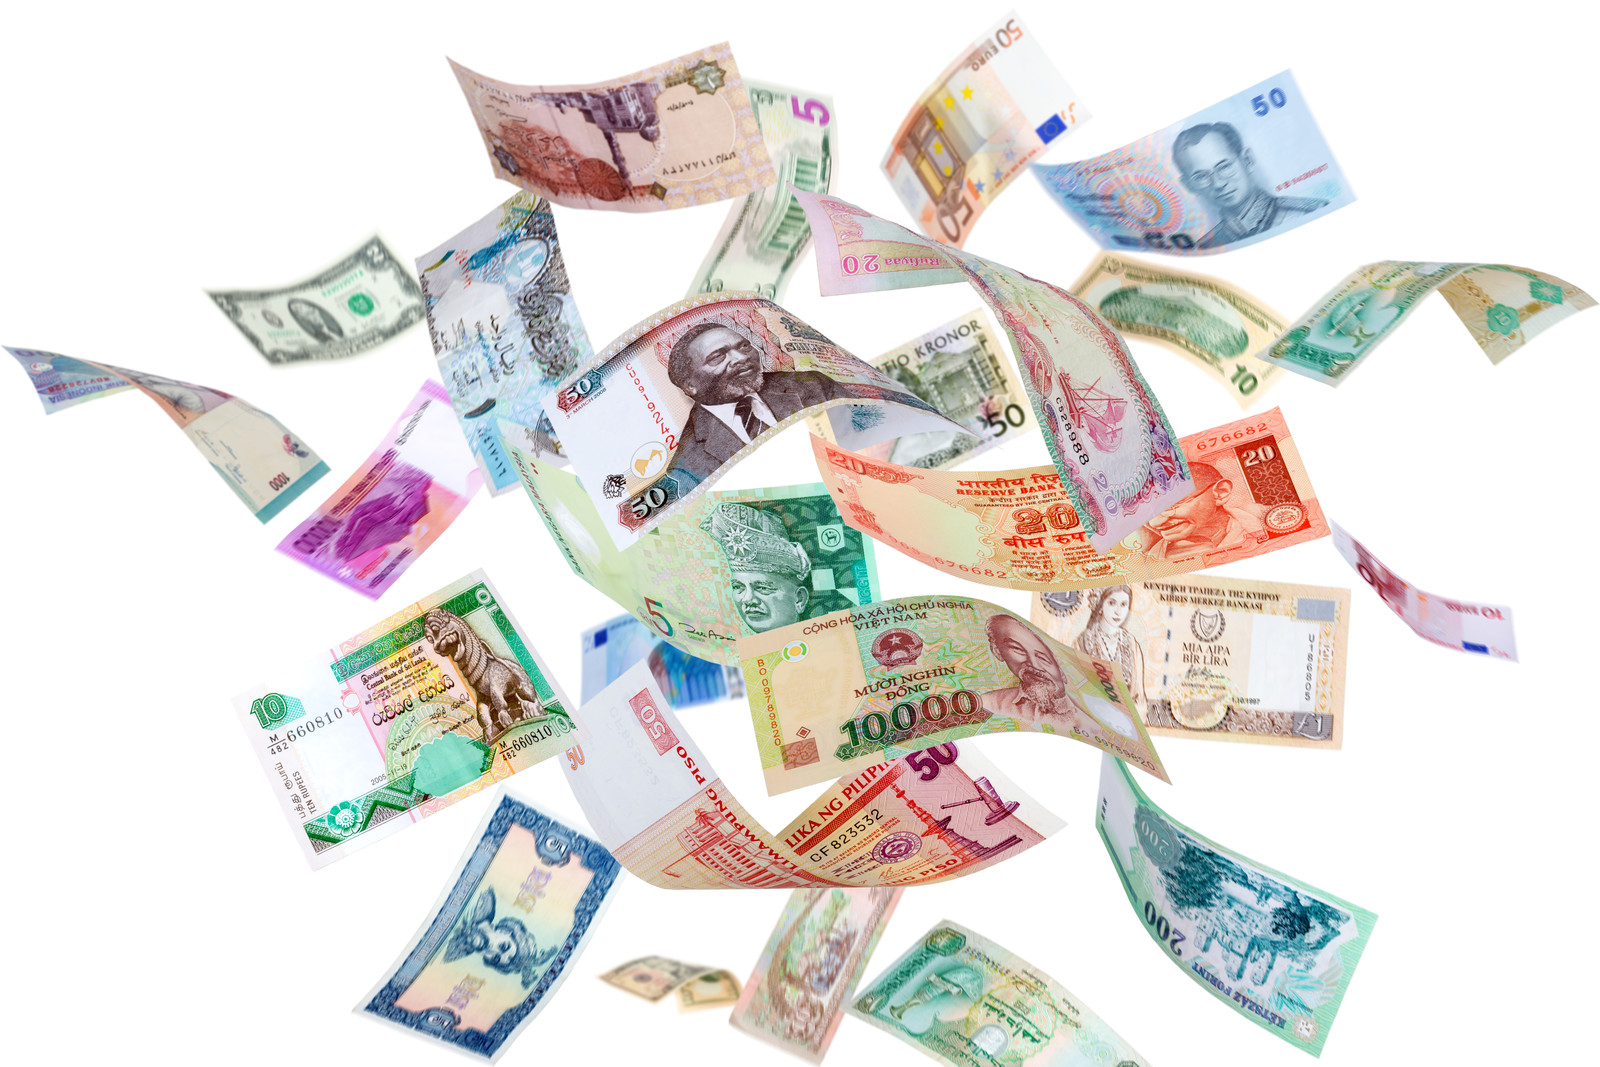 Colorful banknotes from different countries floating on a white background